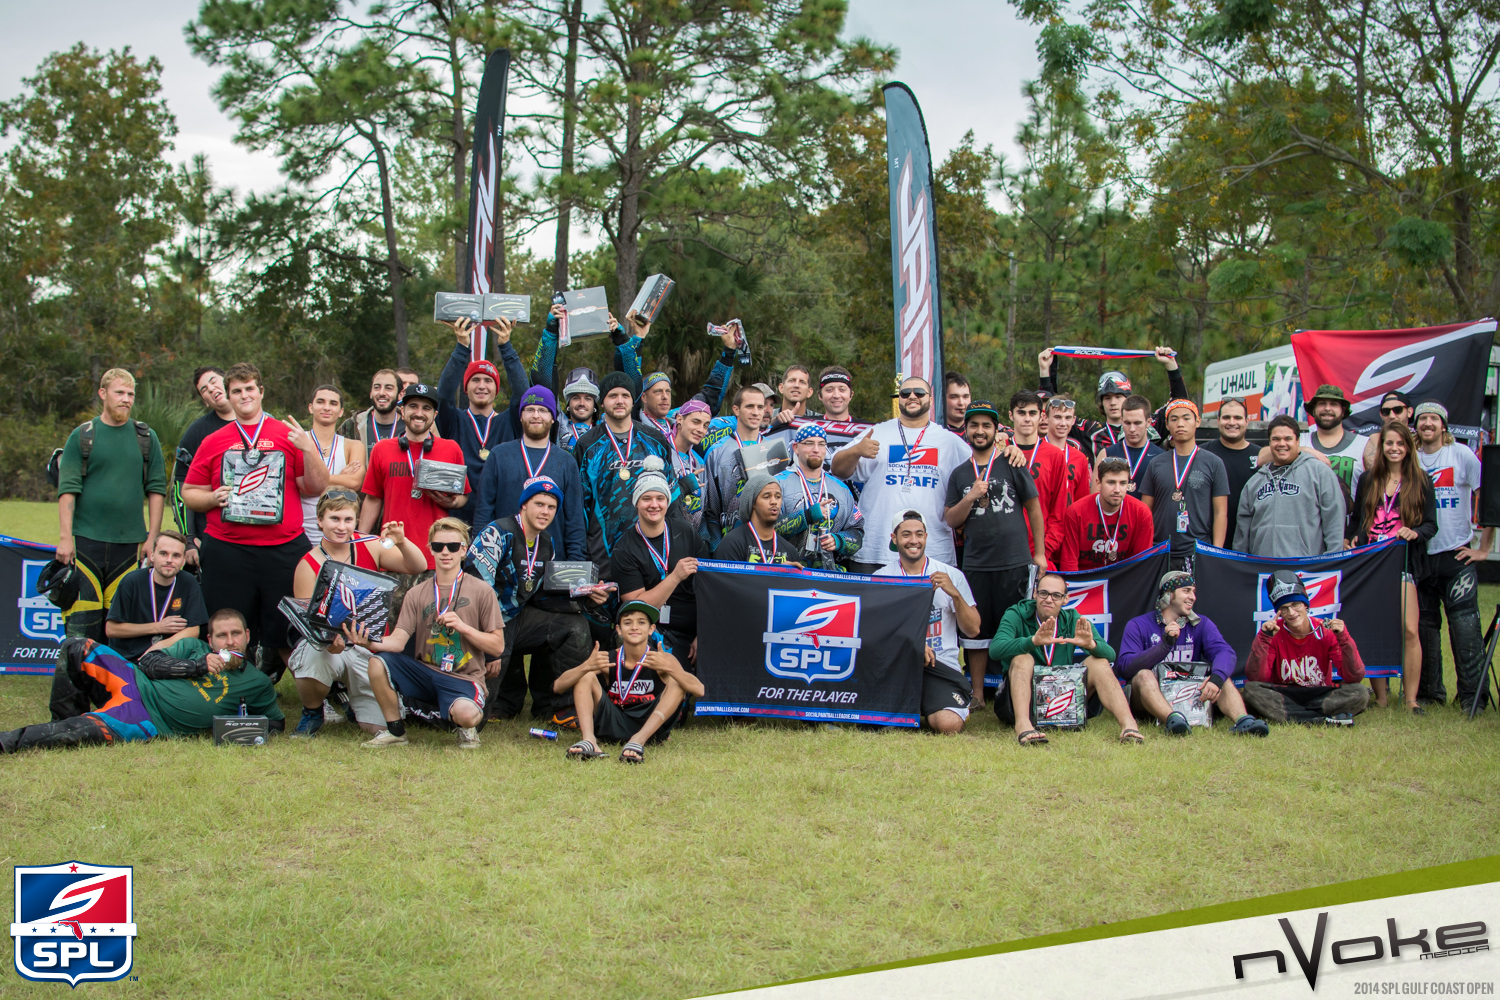 2014 SPL Gulf Coast Open Champions' Club